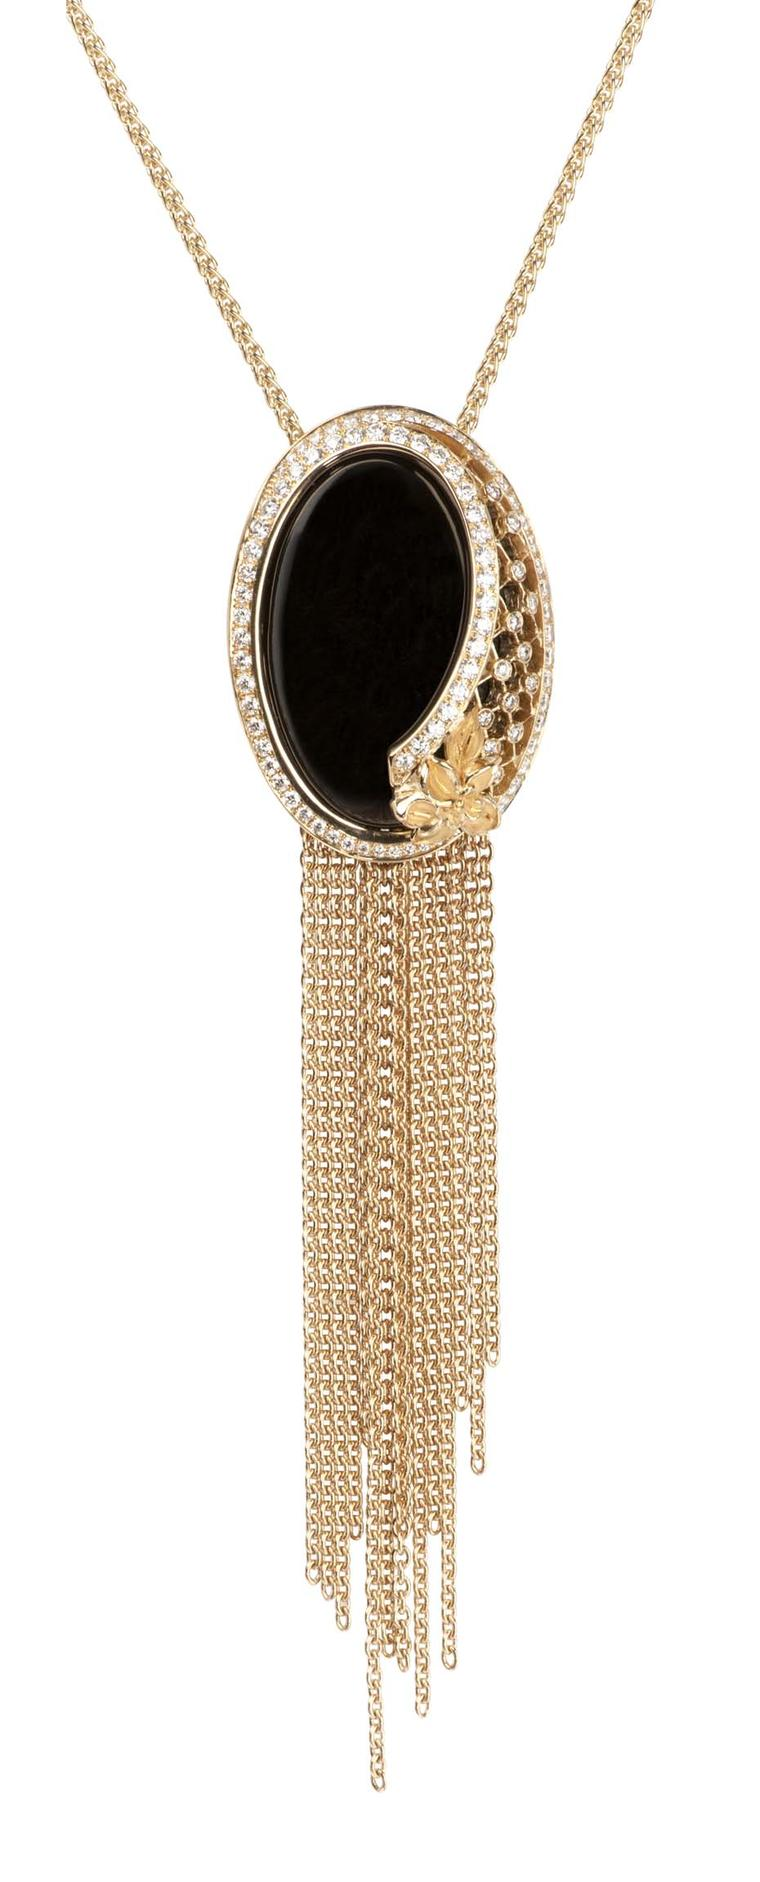 Carrera y Carrera Sierpes maxi necklace in yellow gold, onyx and diamonds.